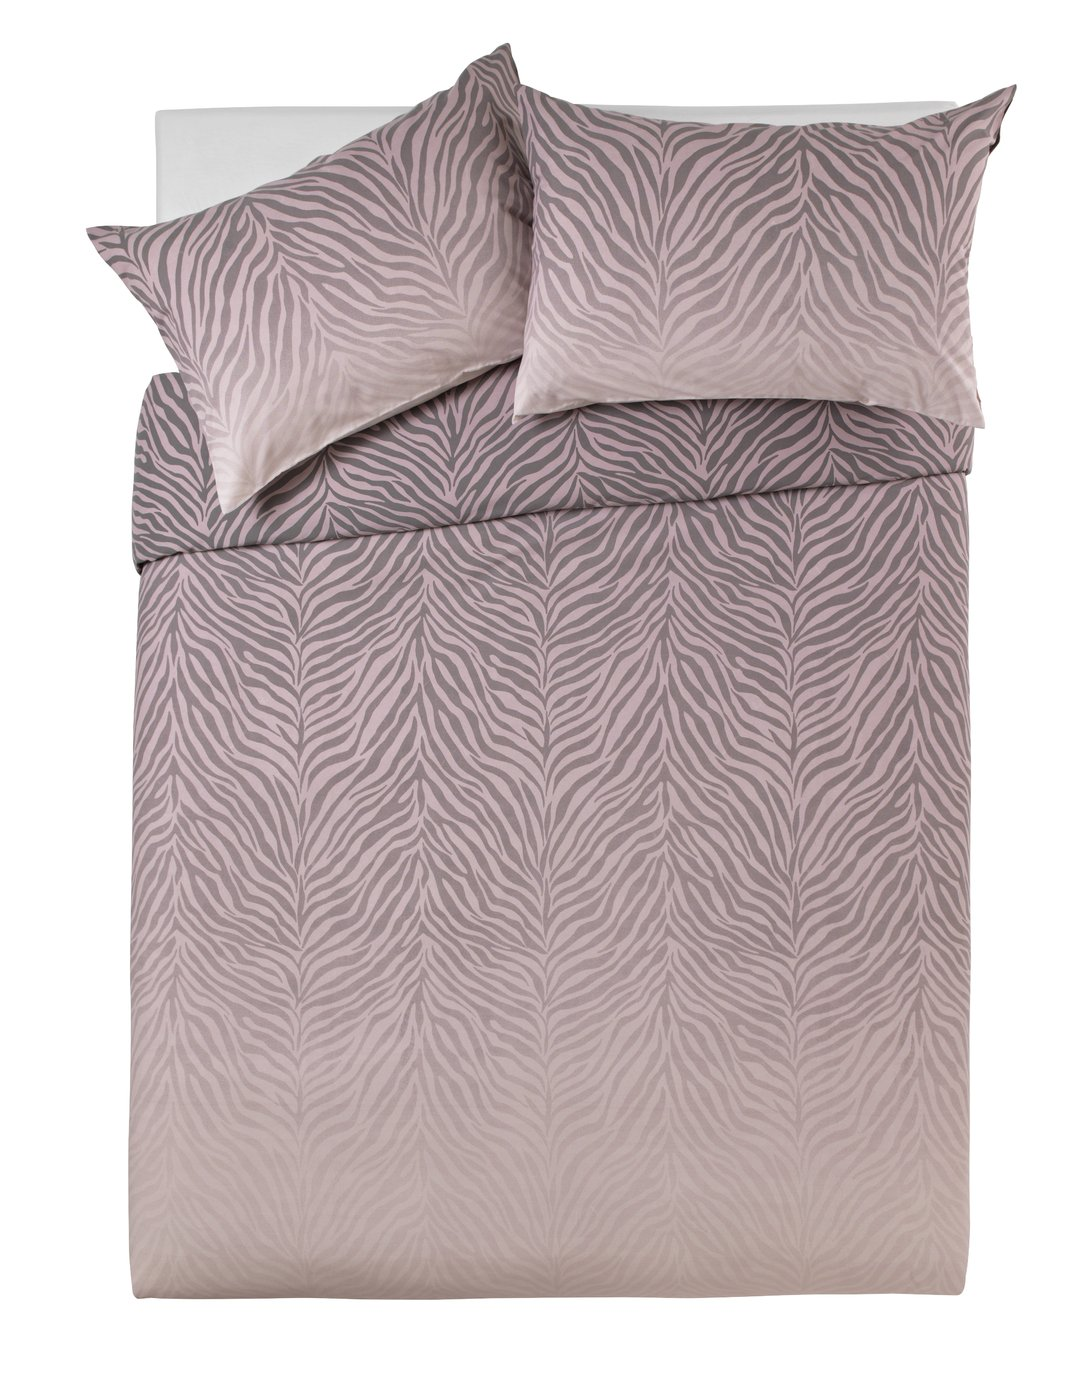 Argos Home Blush Zebra Ombre Bedding Set - Superking